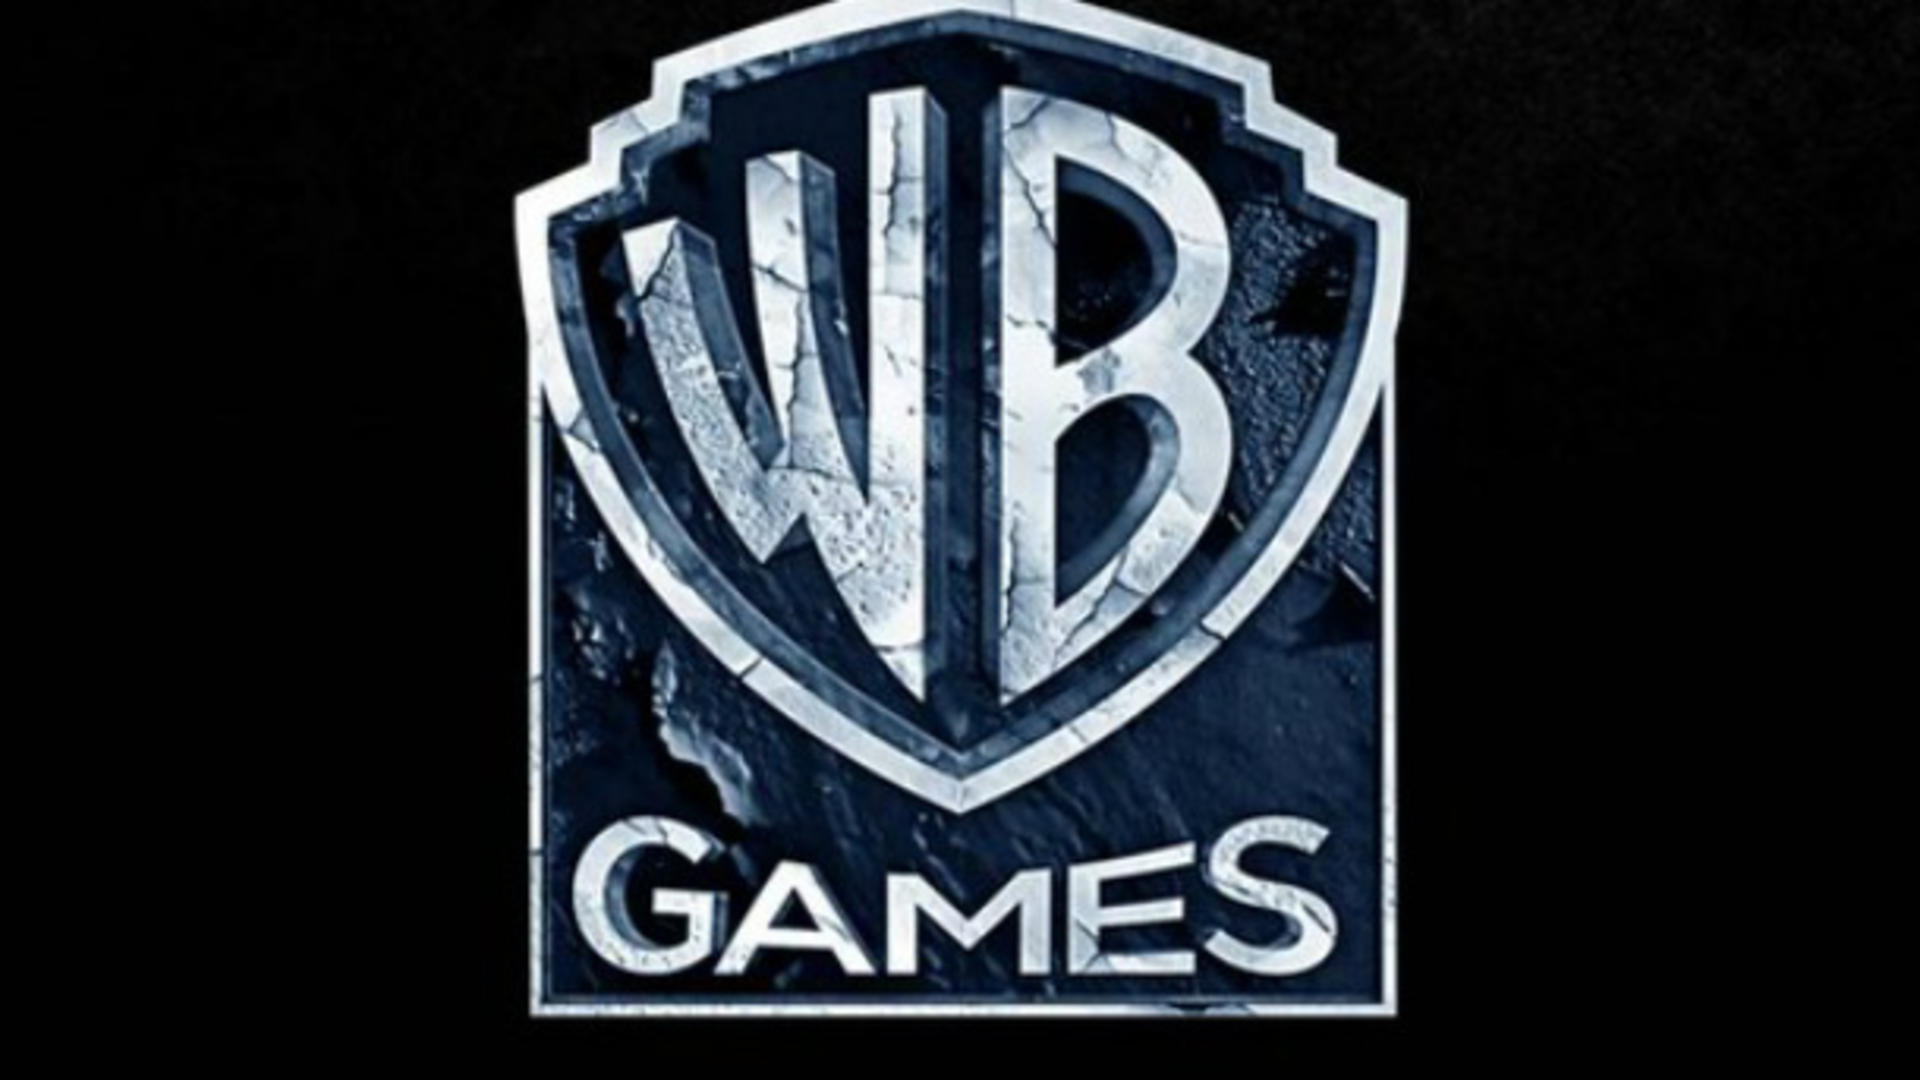 Wb games logo clipart clipart royalty free library WB Games Teases a New Batman Arkham Title   USgamer clipart royalty free library